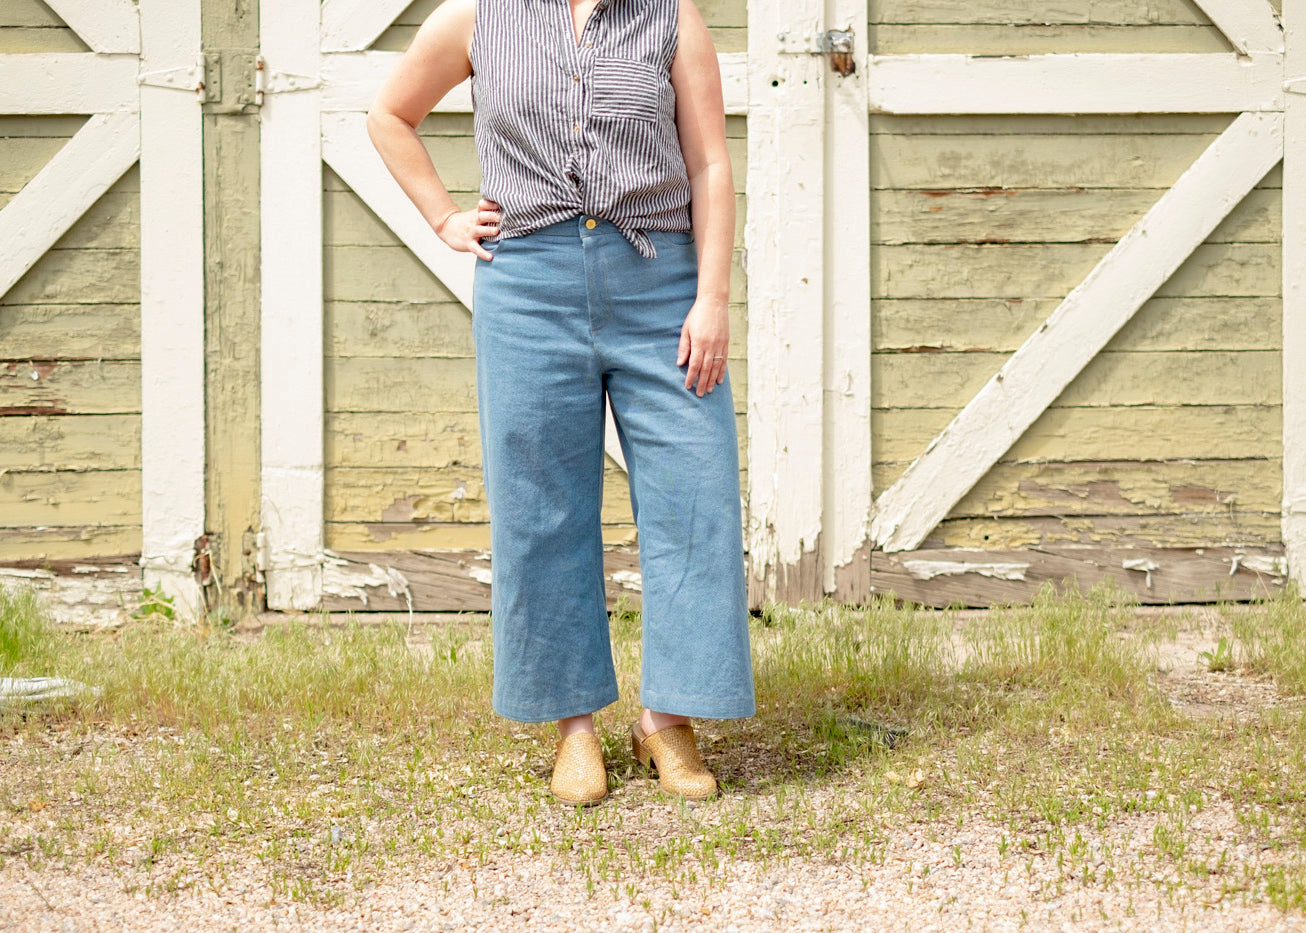 Amanda's lander pants in front of barn wall